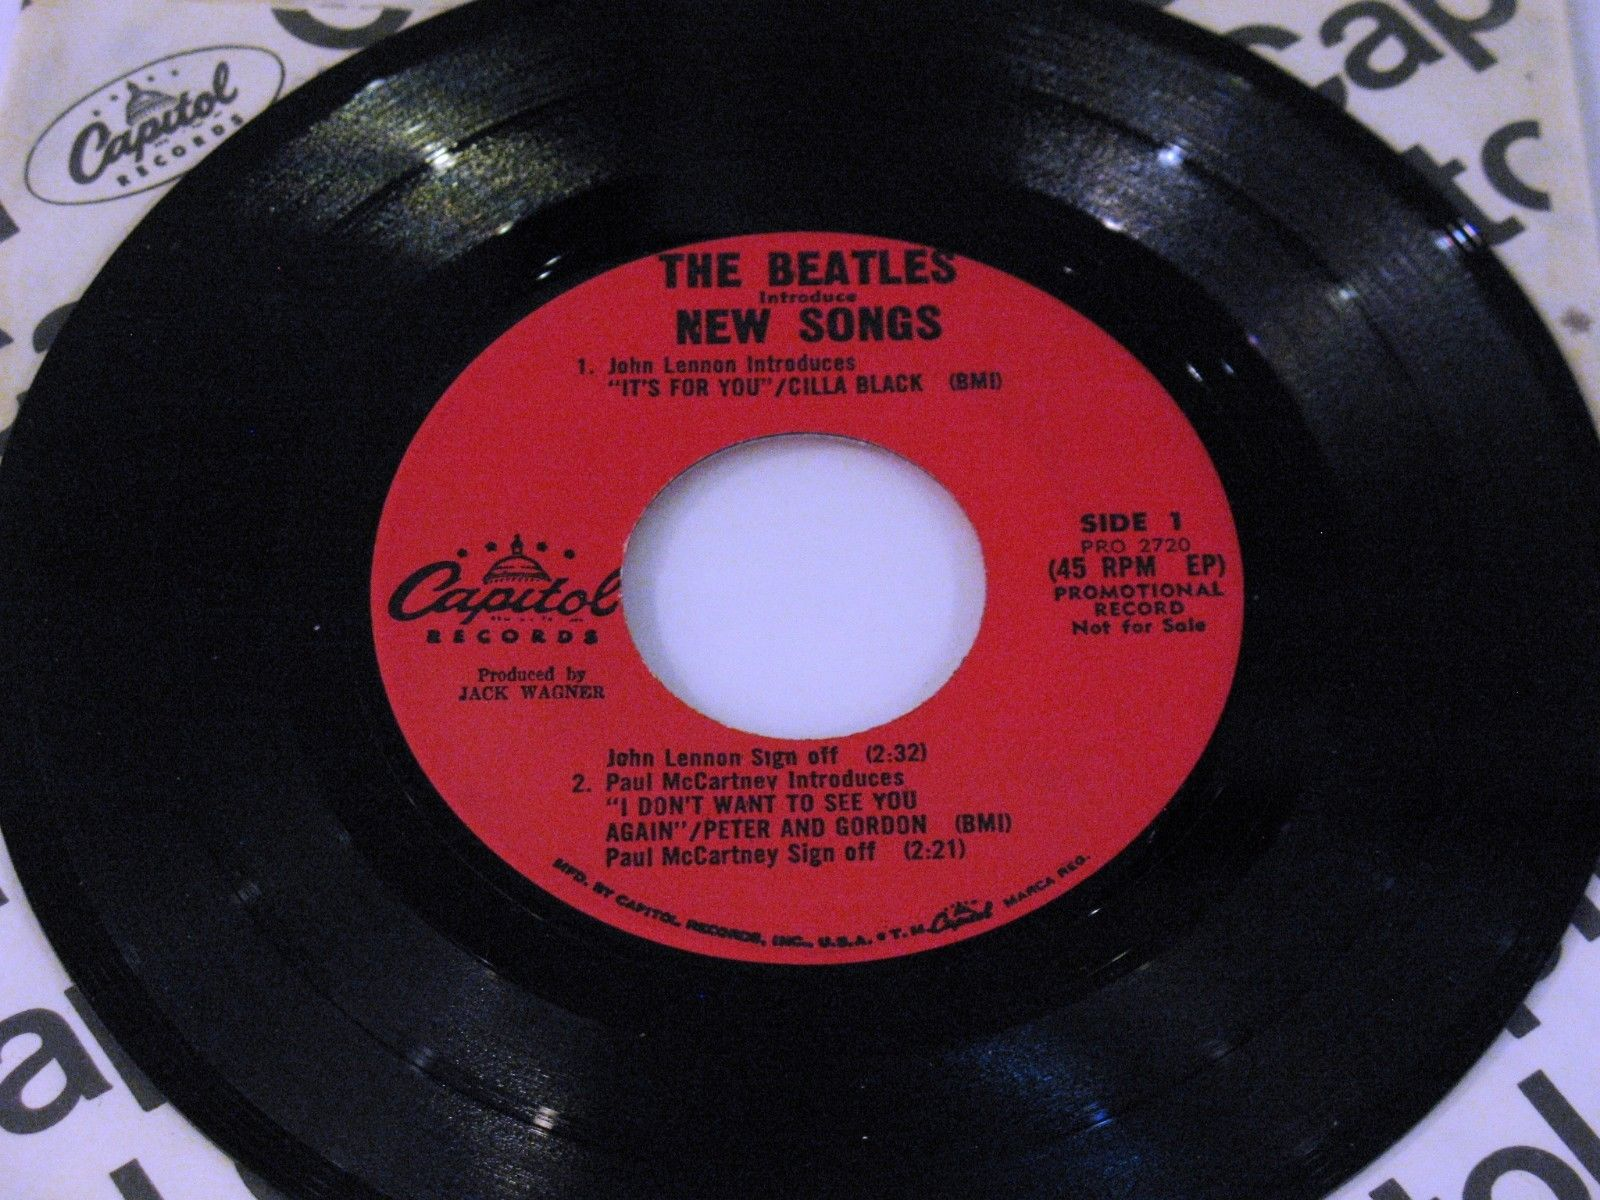 """Beatles 45 PROMO """"BEATLES INTRODUCE NEW SONGS"""" Capitol PRO 2720 w/Asterisk - NM"""